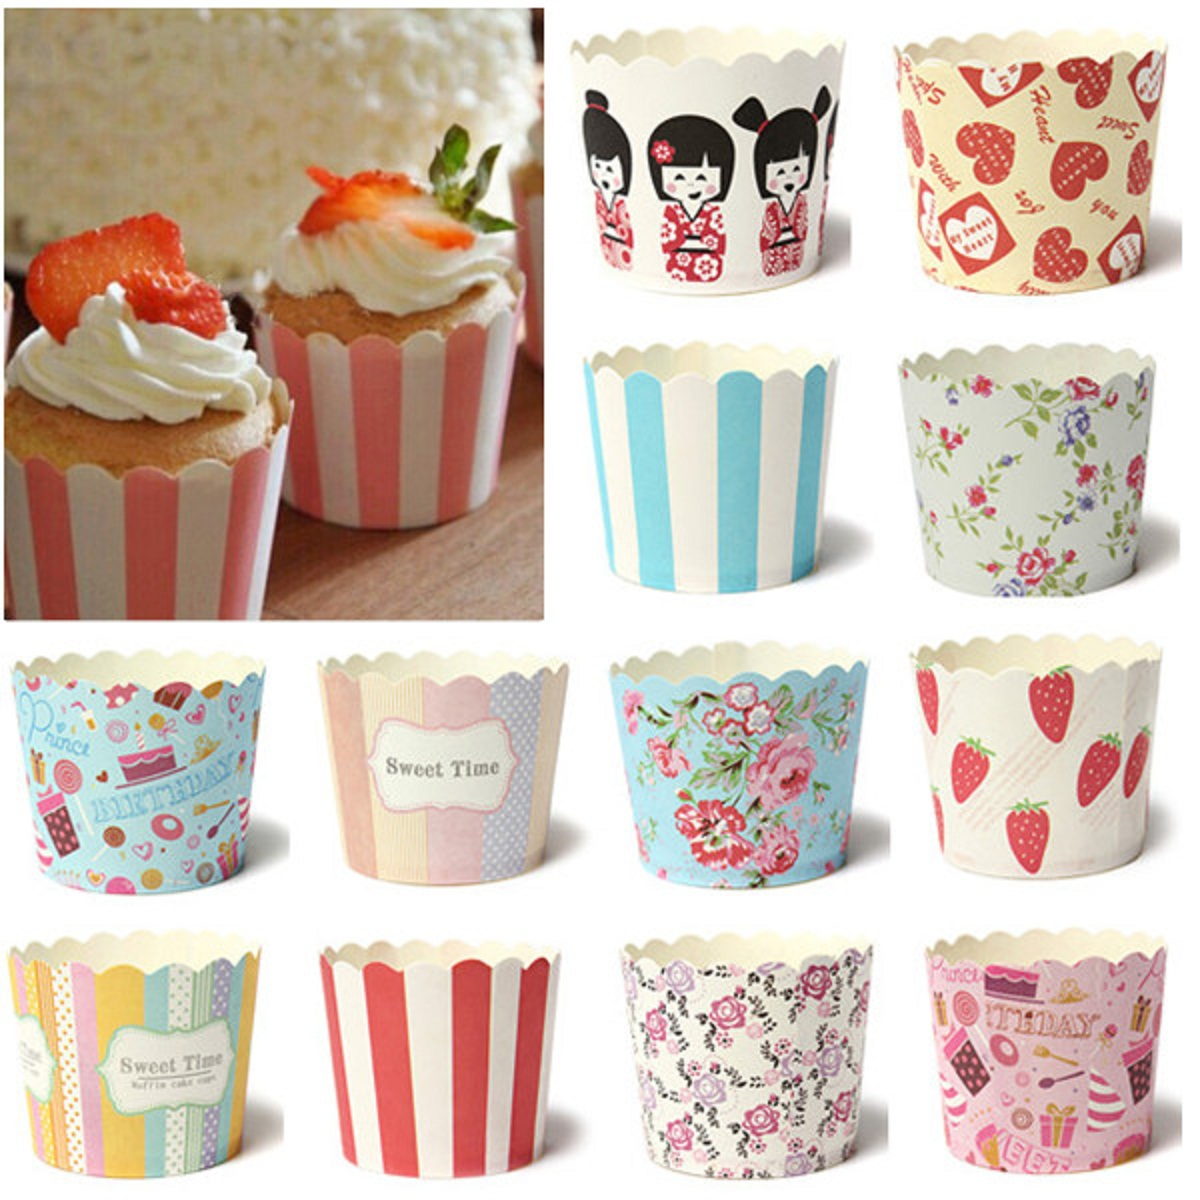 Christmas Party Mini Paper Cake Cup Liners Baking Cupcake Cases